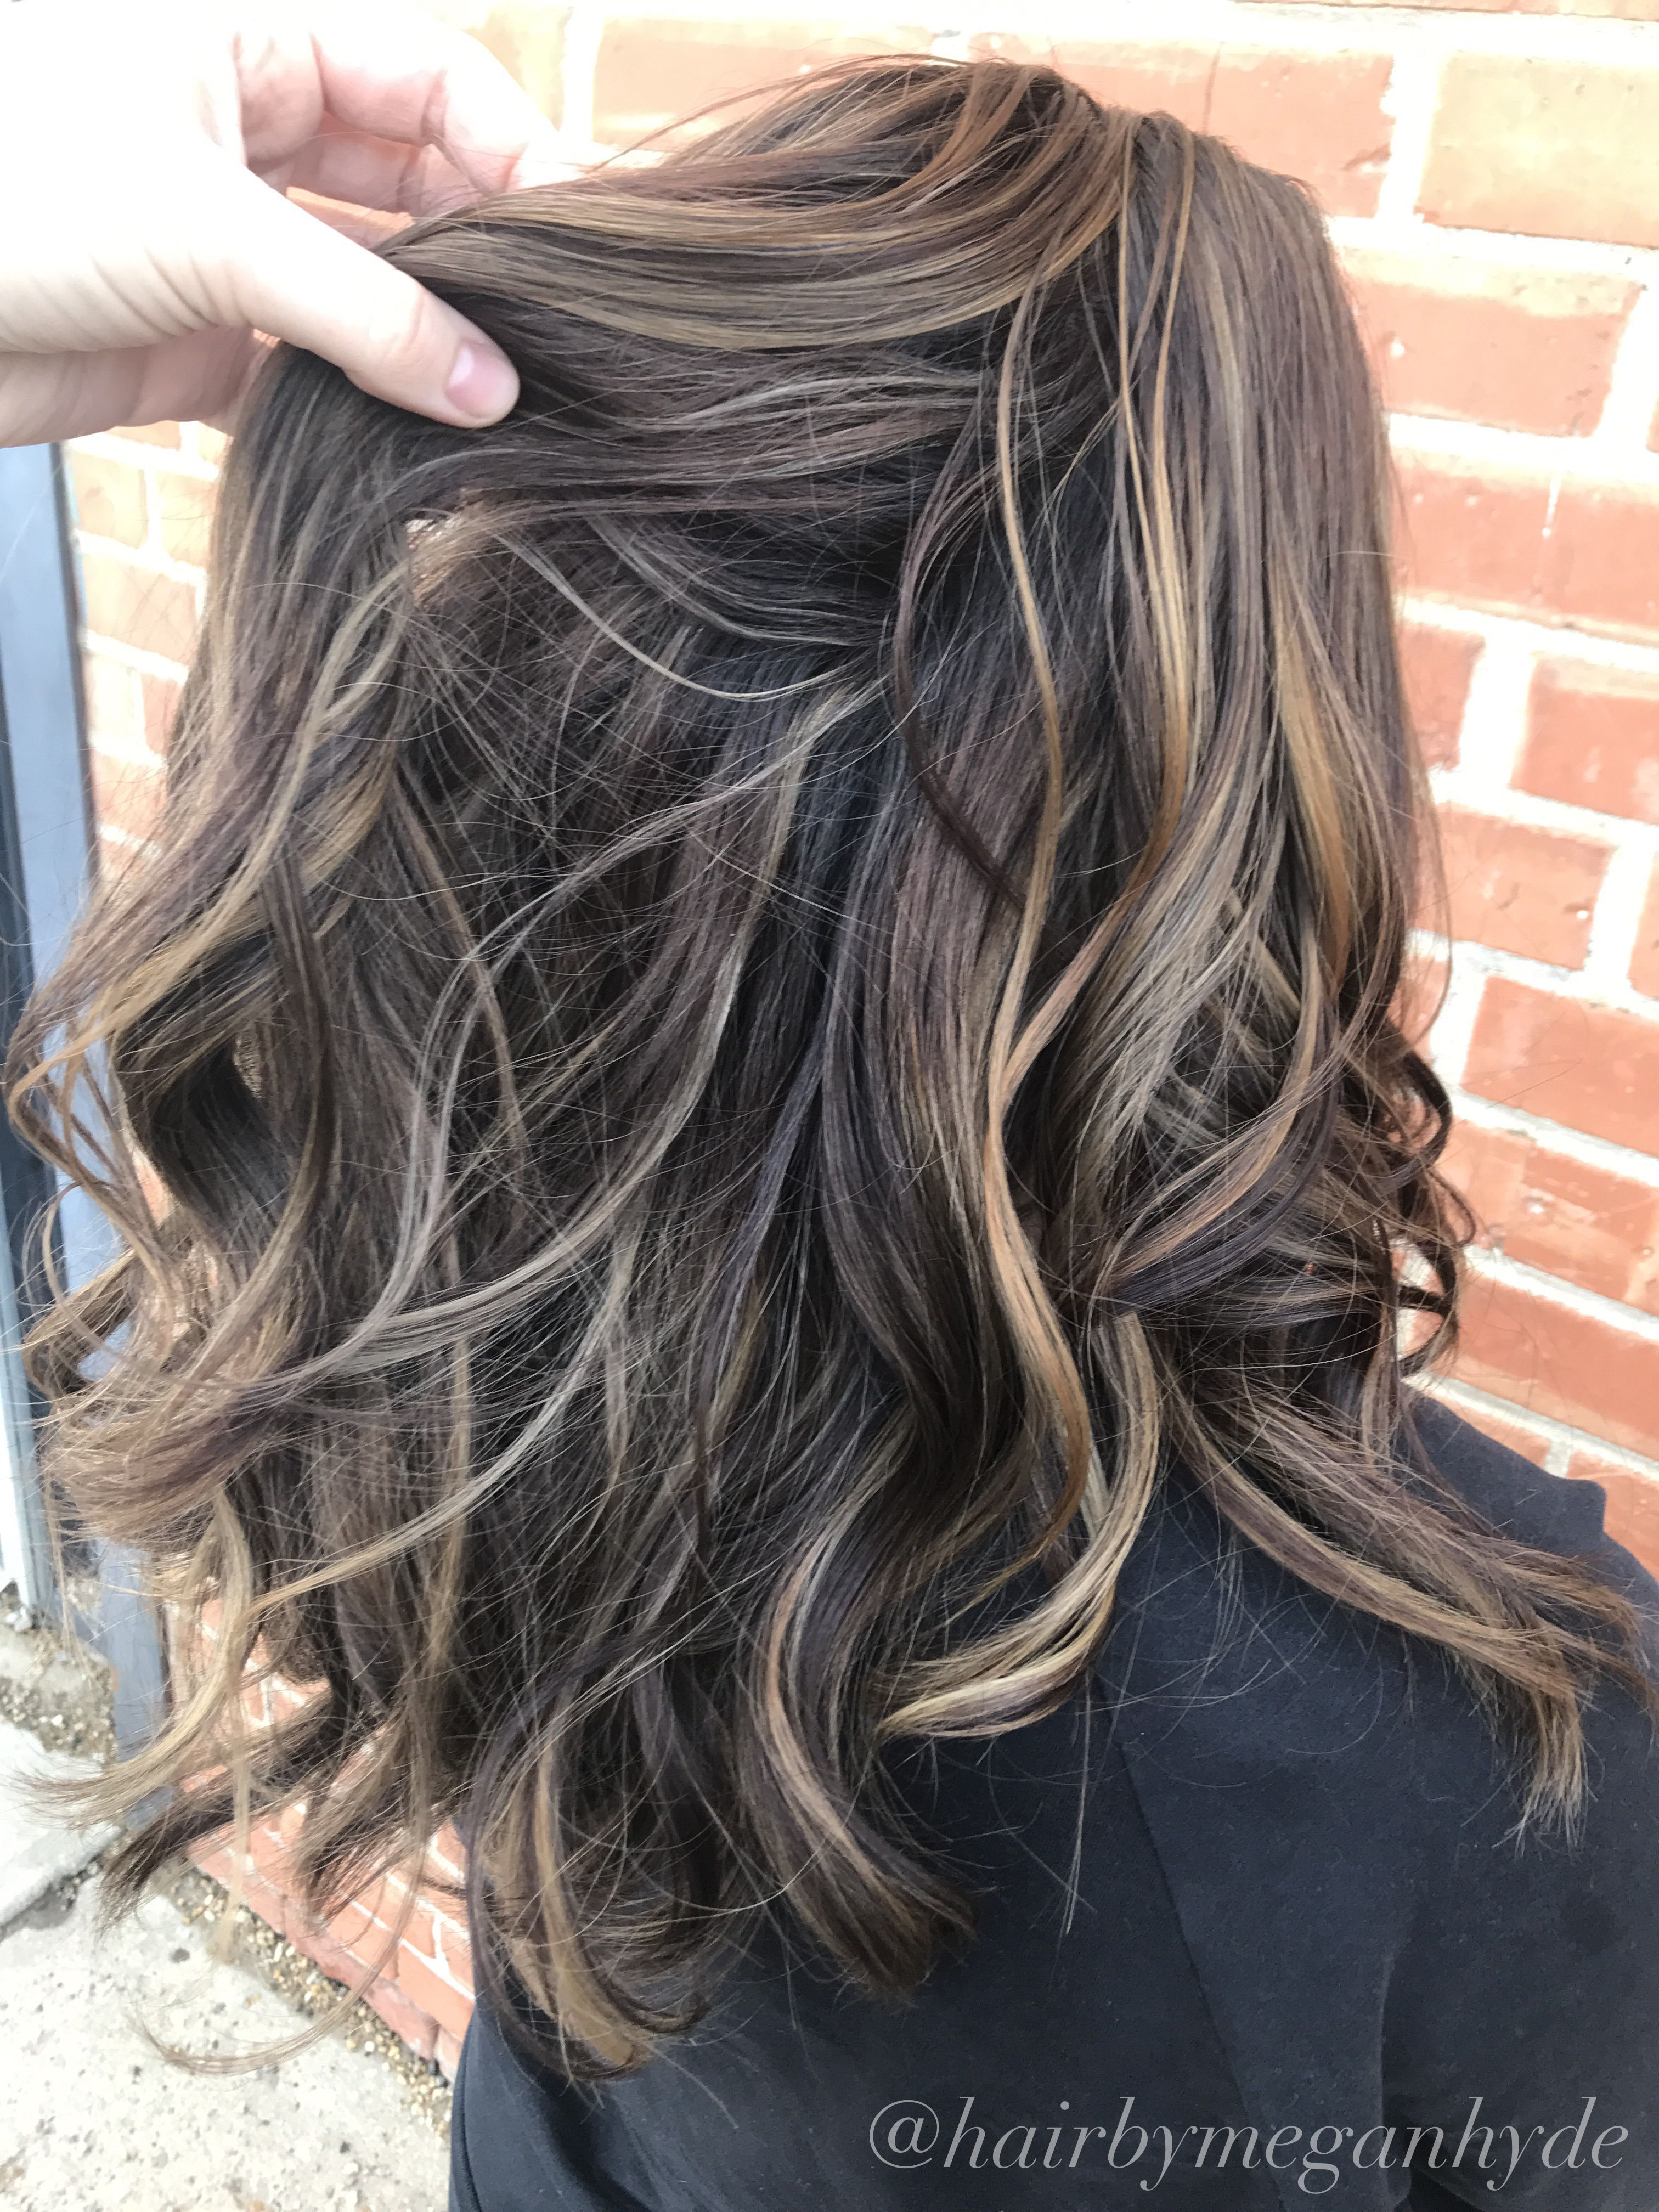 Best Hair Care Products In 2020 Hair Color For Morena Skin Hair Color For Morena Balayage Hair